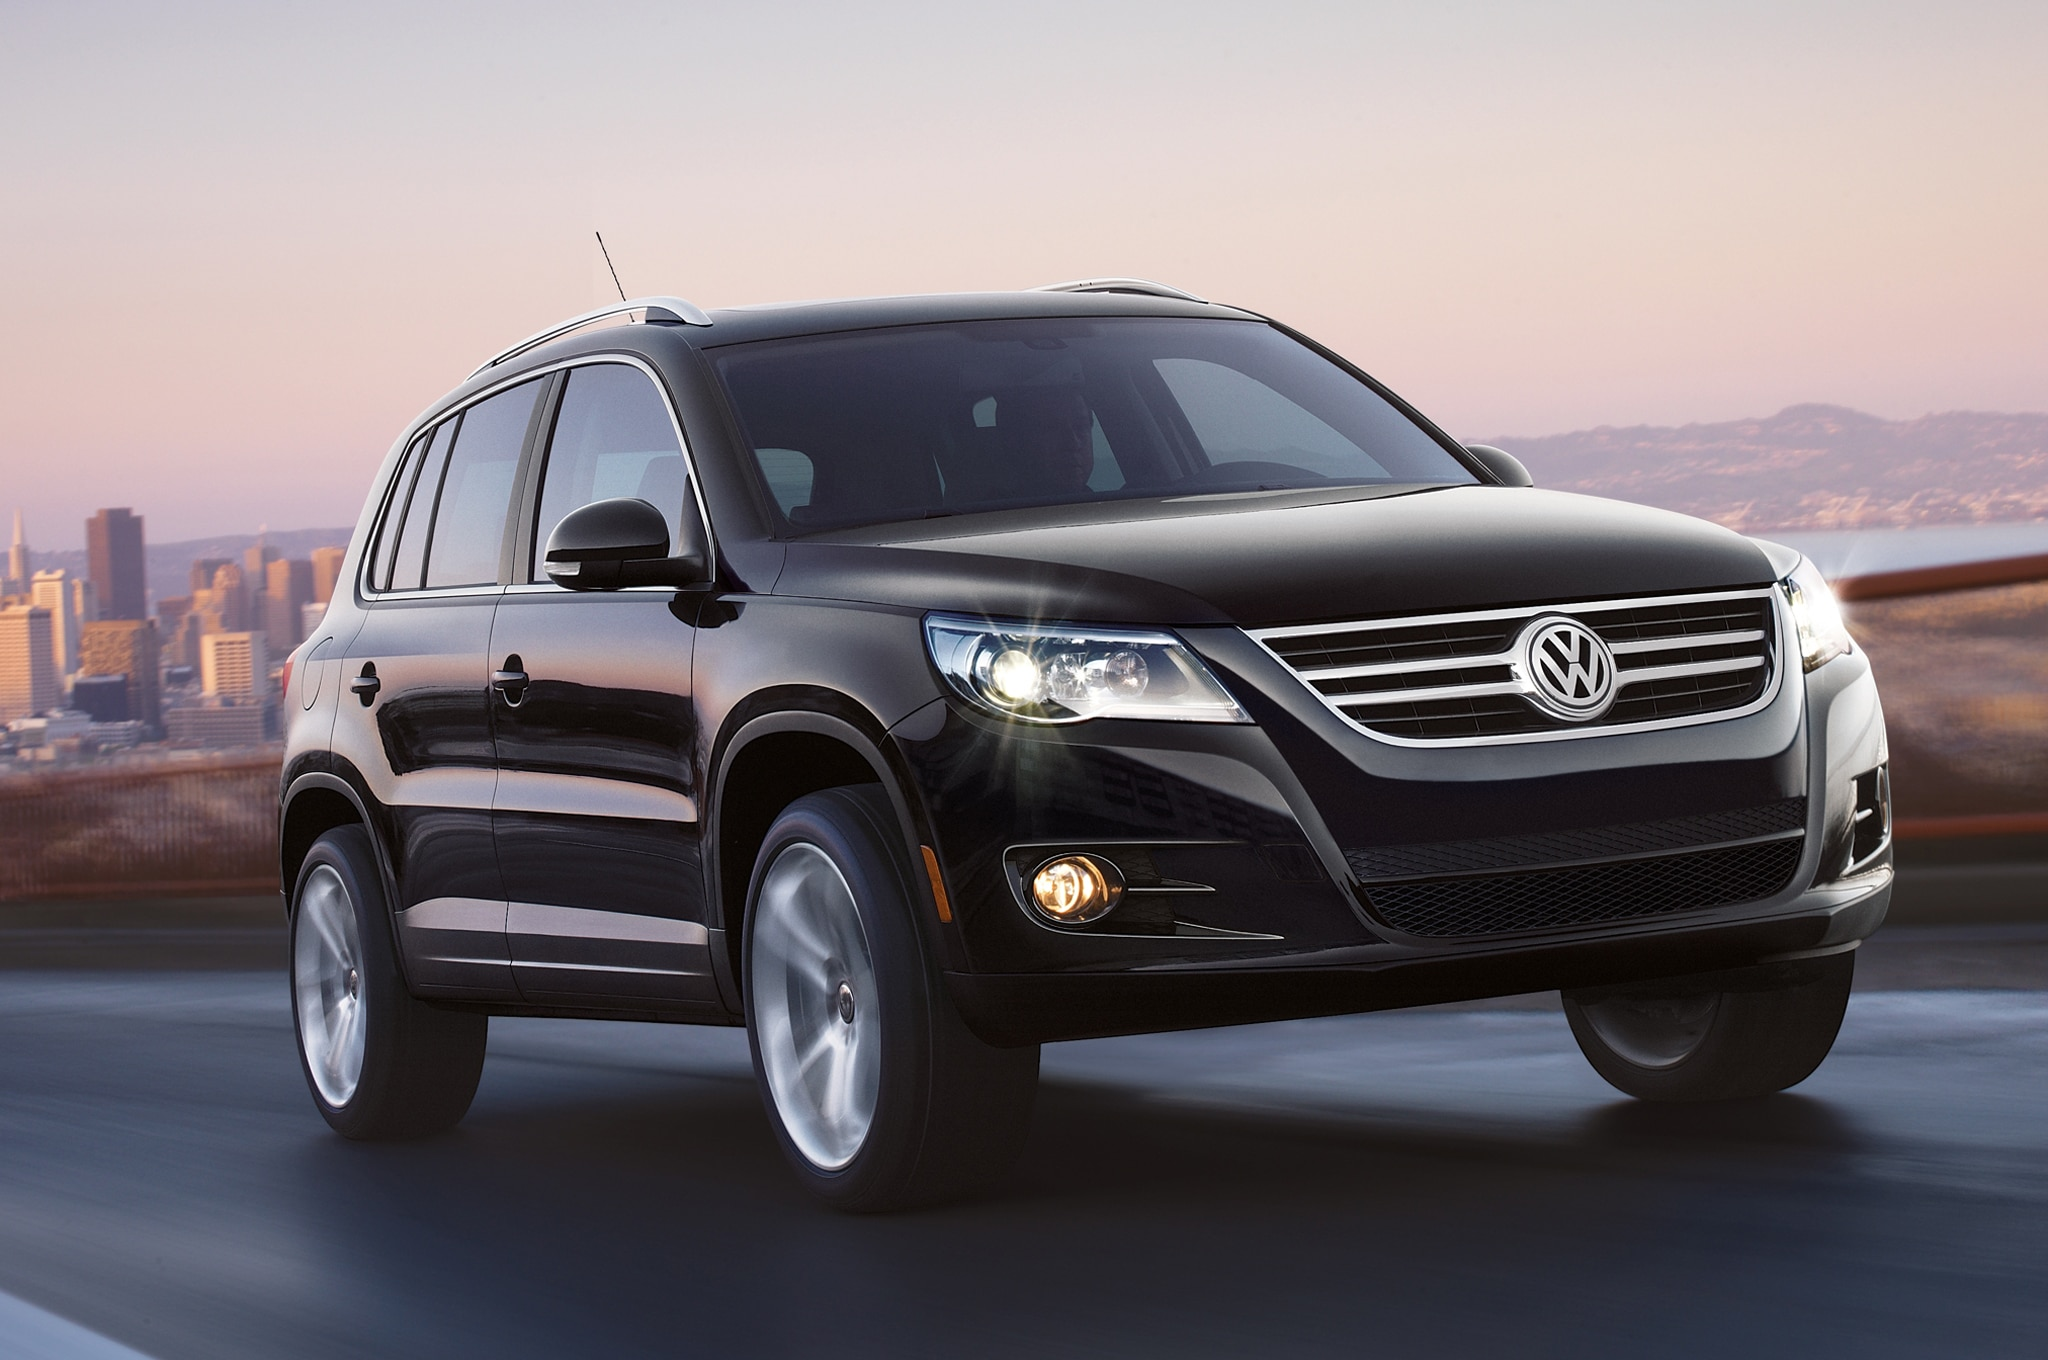 recall central 2009 11 volkswagen tiguan 2013 14. Black Bedroom Furniture Sets. Home Design Ideas